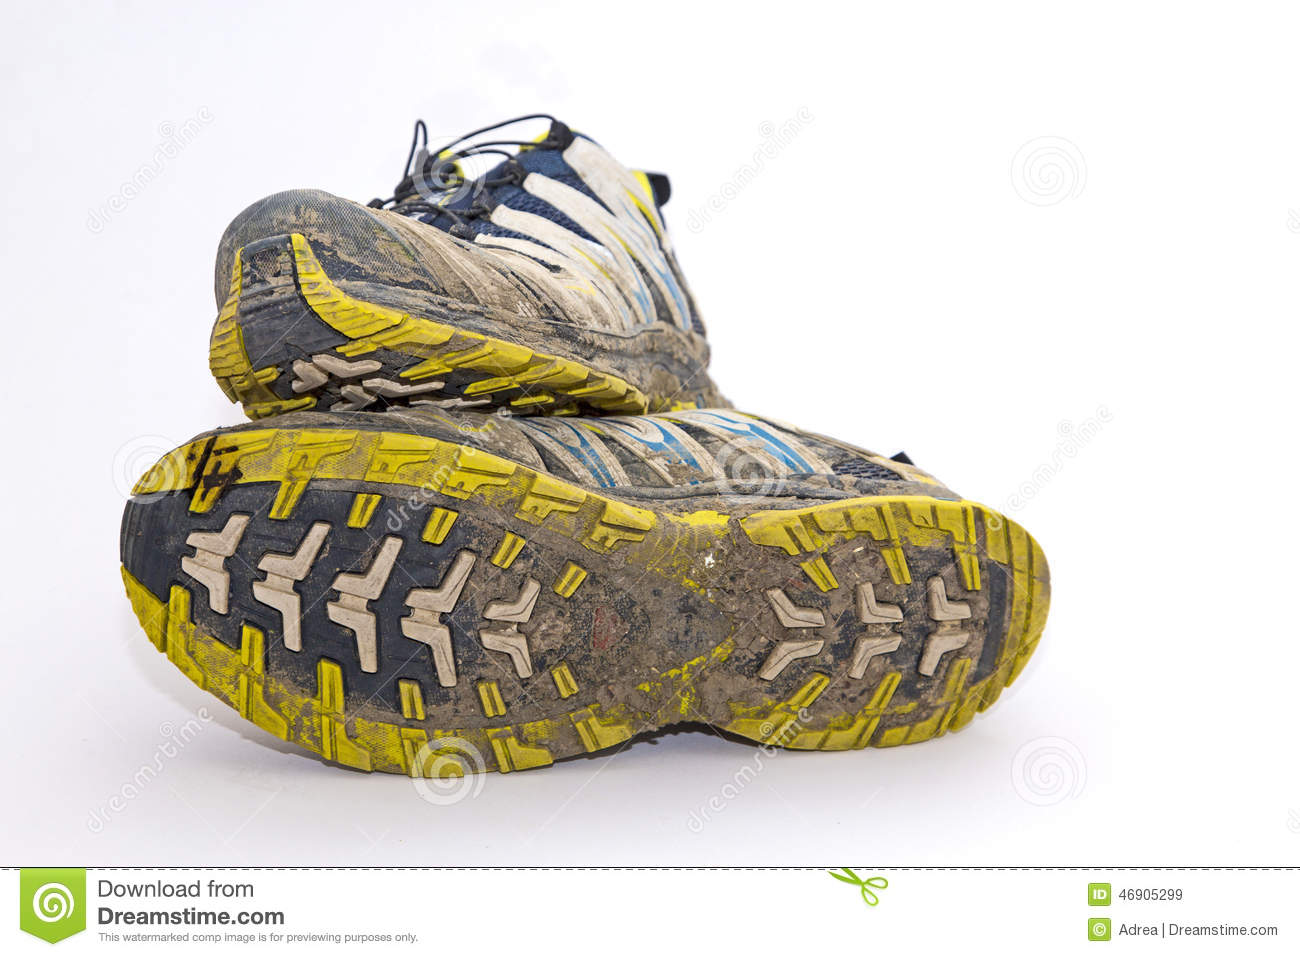 OutdoorsPower 46905299 Trail Running ImageImage Of Stock Shoe n0kXP8Ow